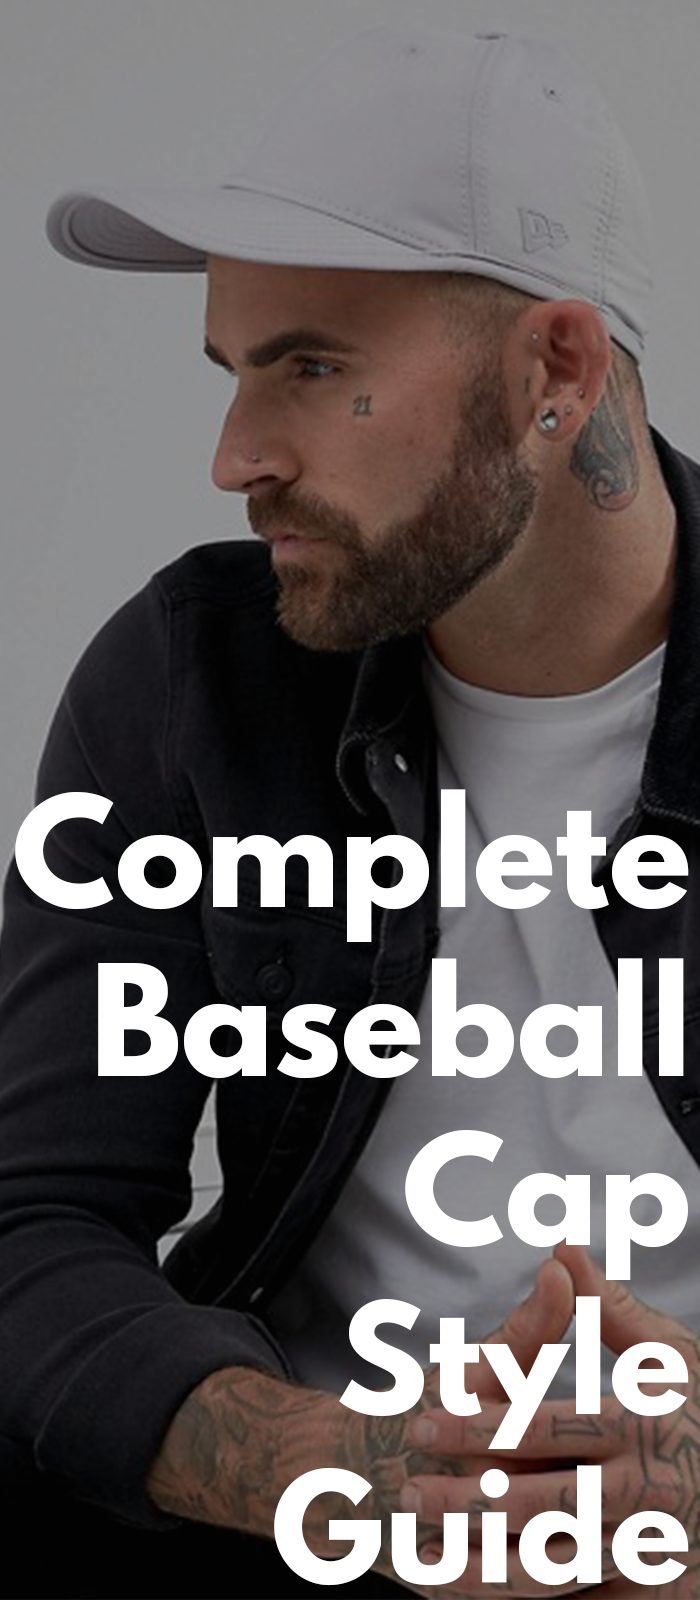 Complete Baseball Cap Style Guide this year